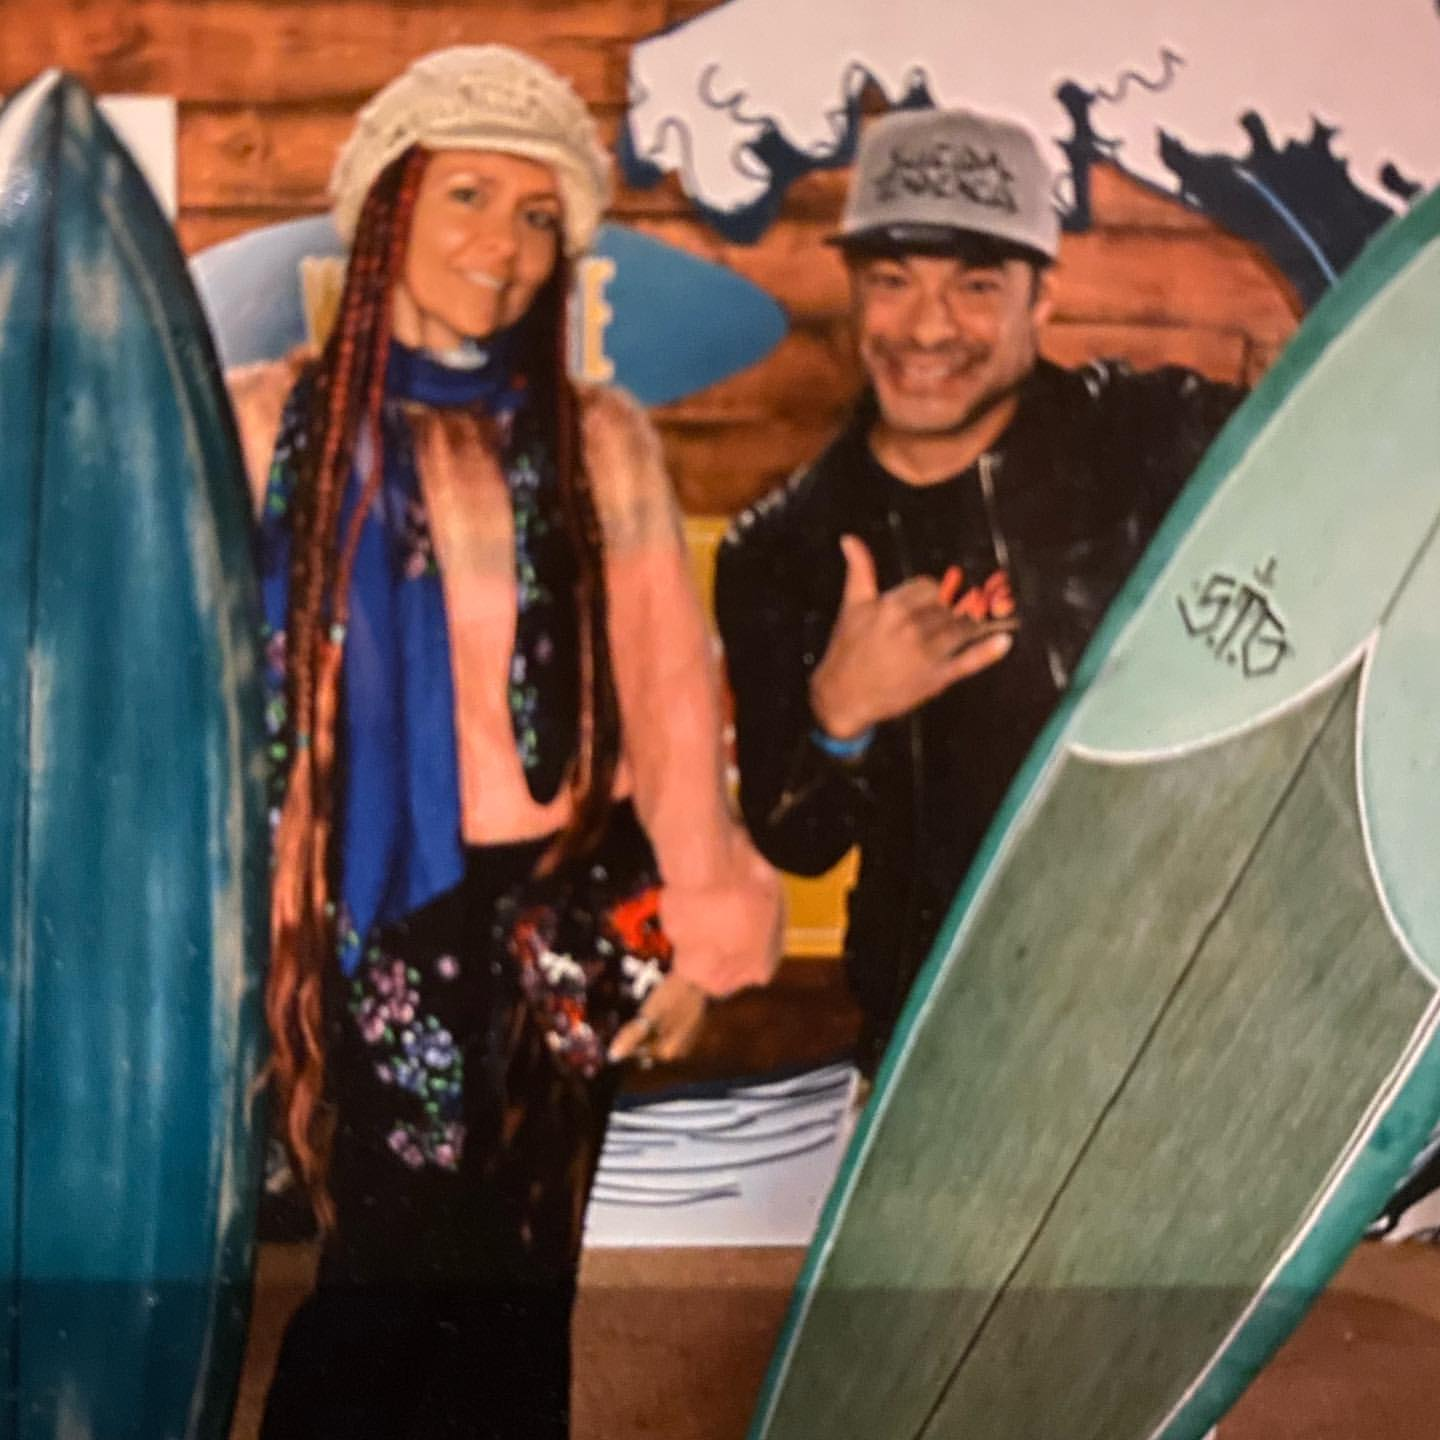 Robert Trujillo and Chloe Trujillo were posing in front of their surfboards.